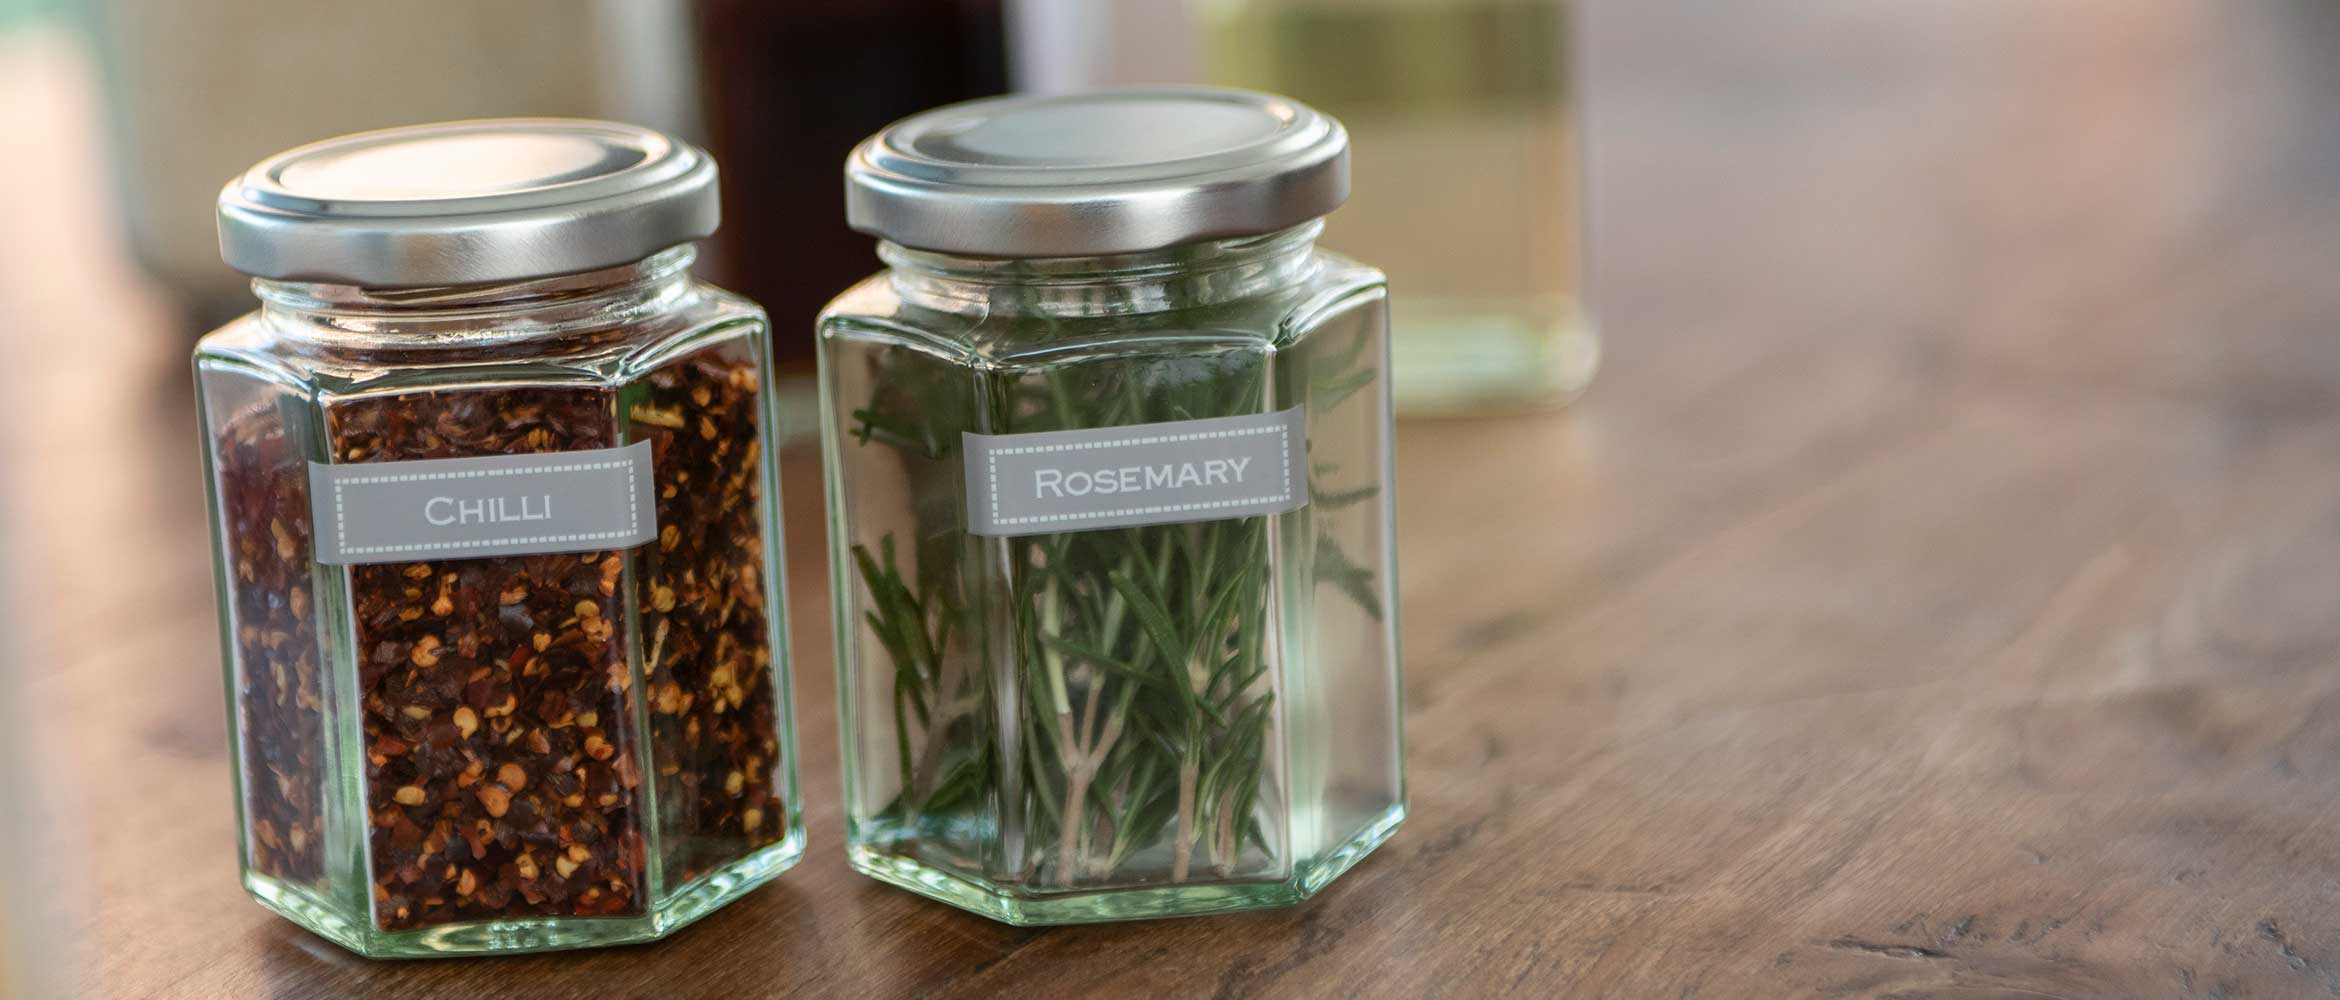 White text on grey labels, applied to jars to identify contents as chilli and rosemary